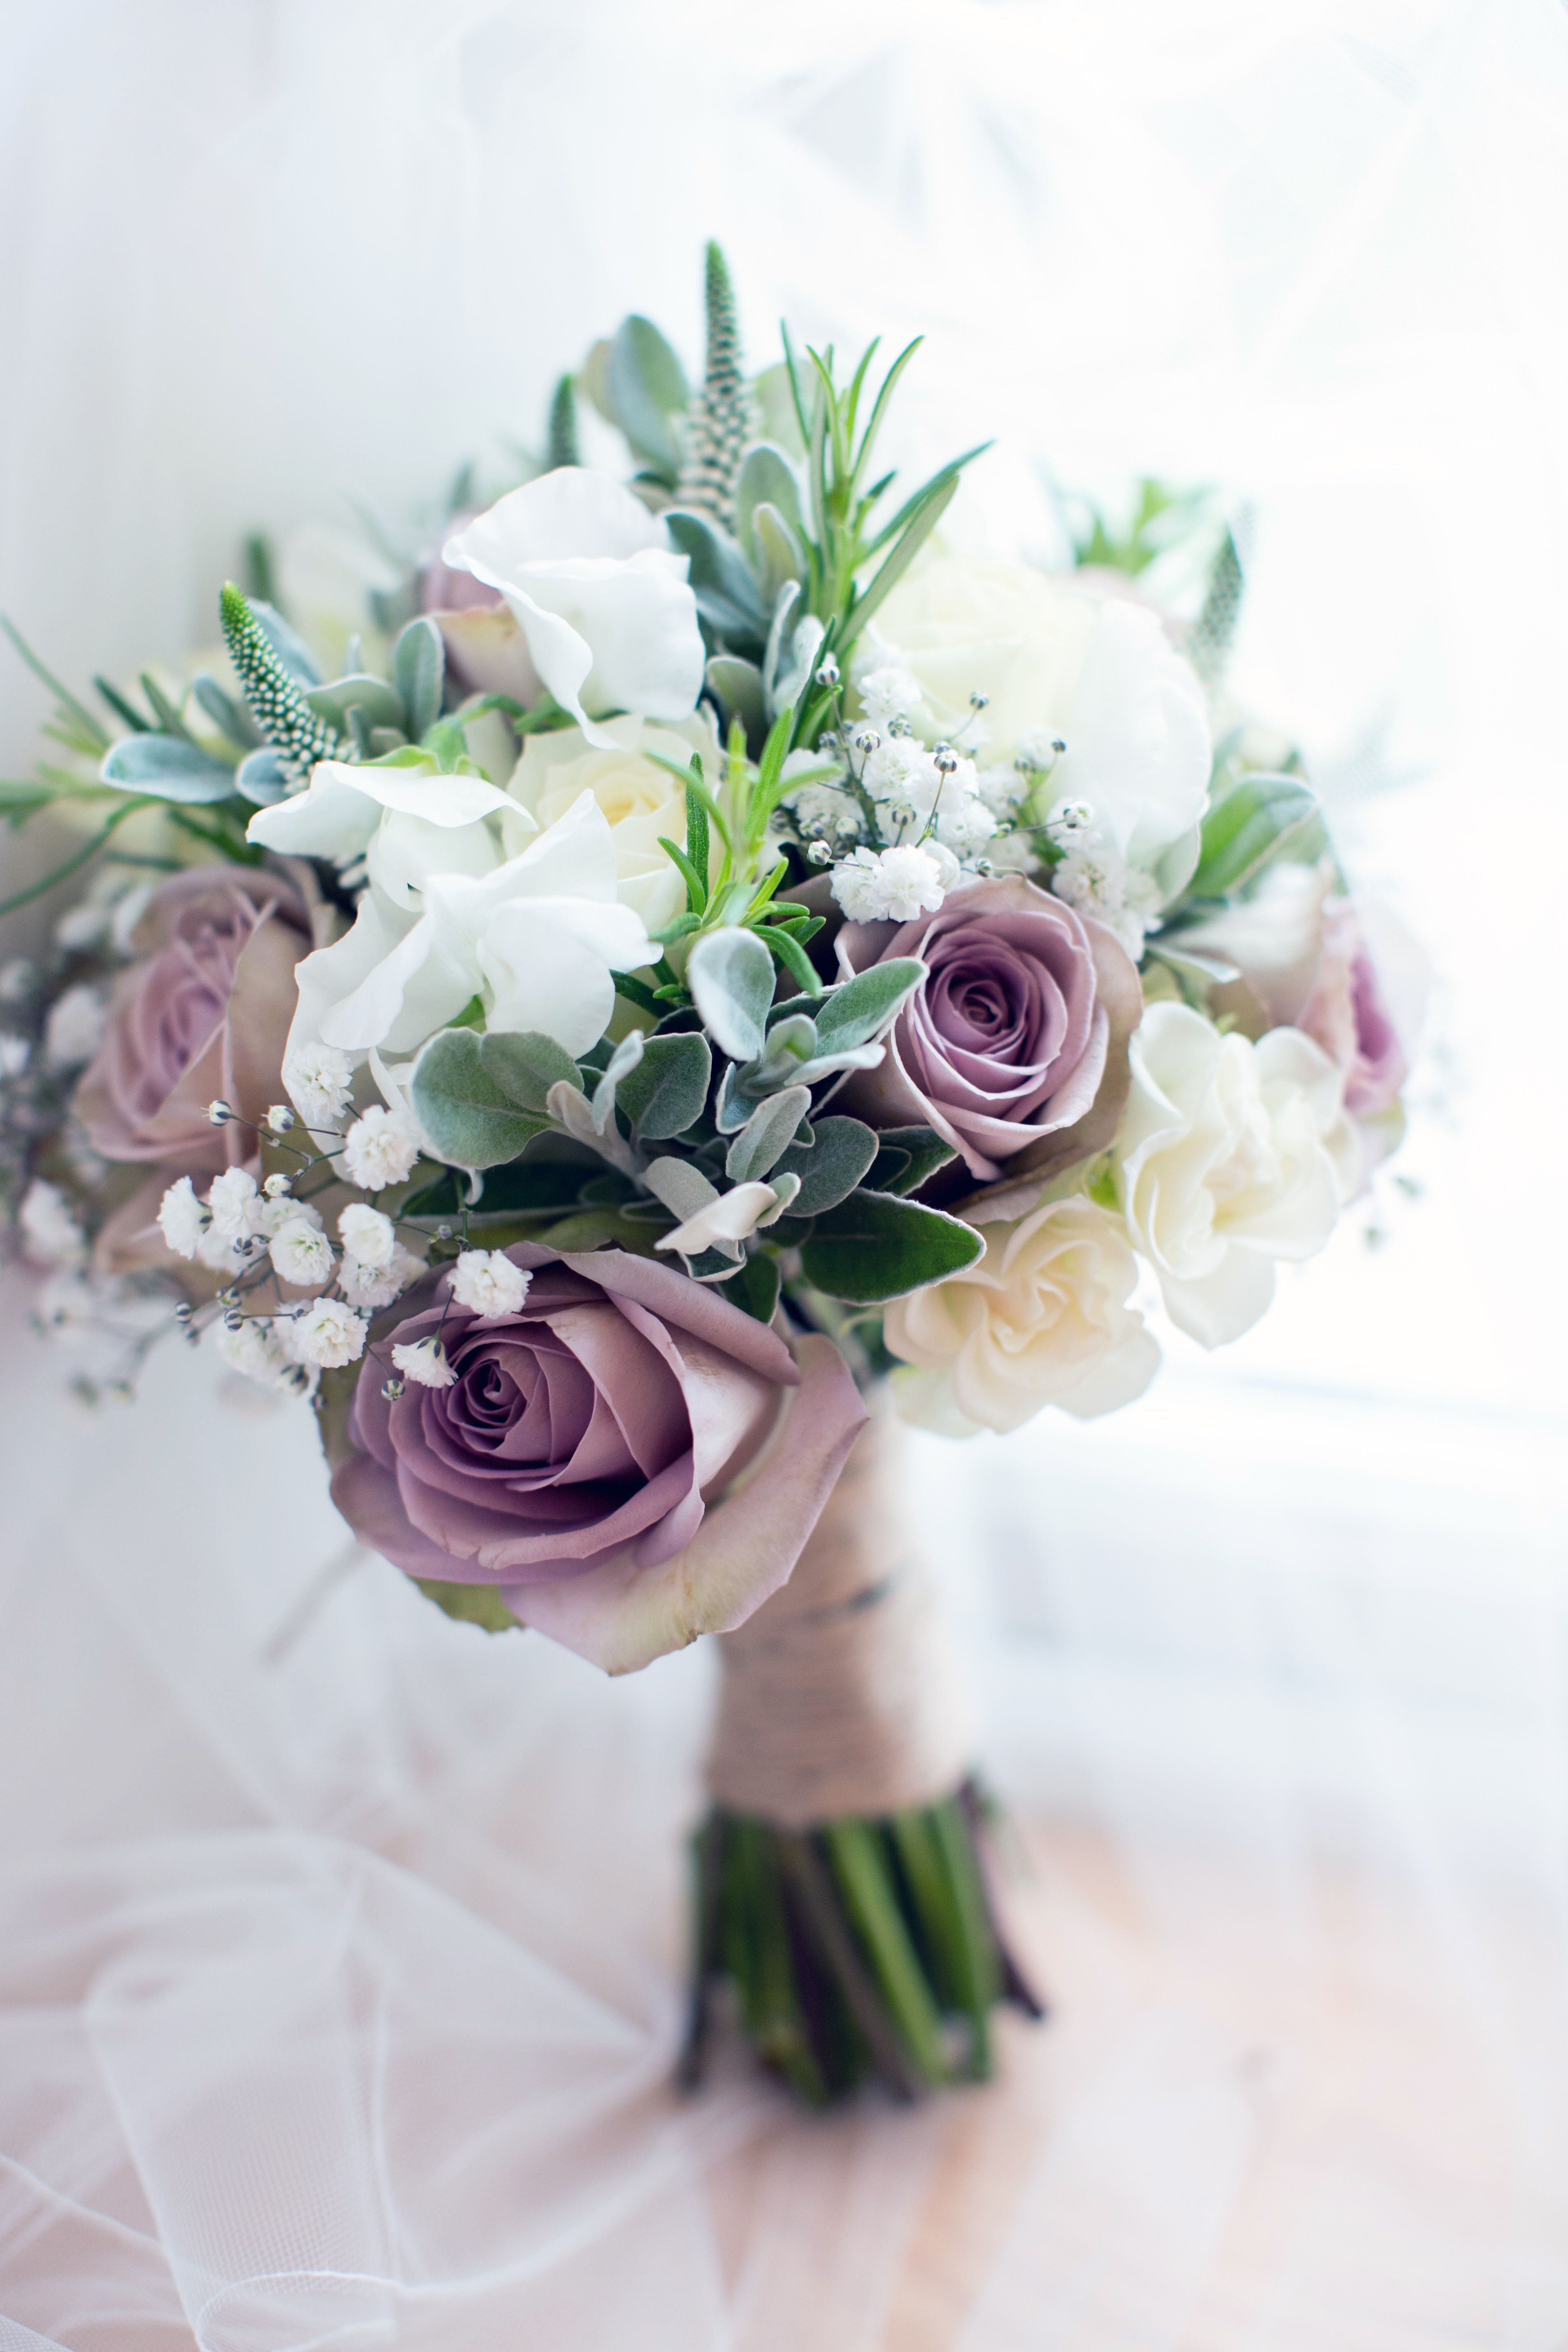 Driftwood flowers mauve and white bridal bouquet wedding driftwood flowers mauve and white bridal bouquet izmirmasajfo